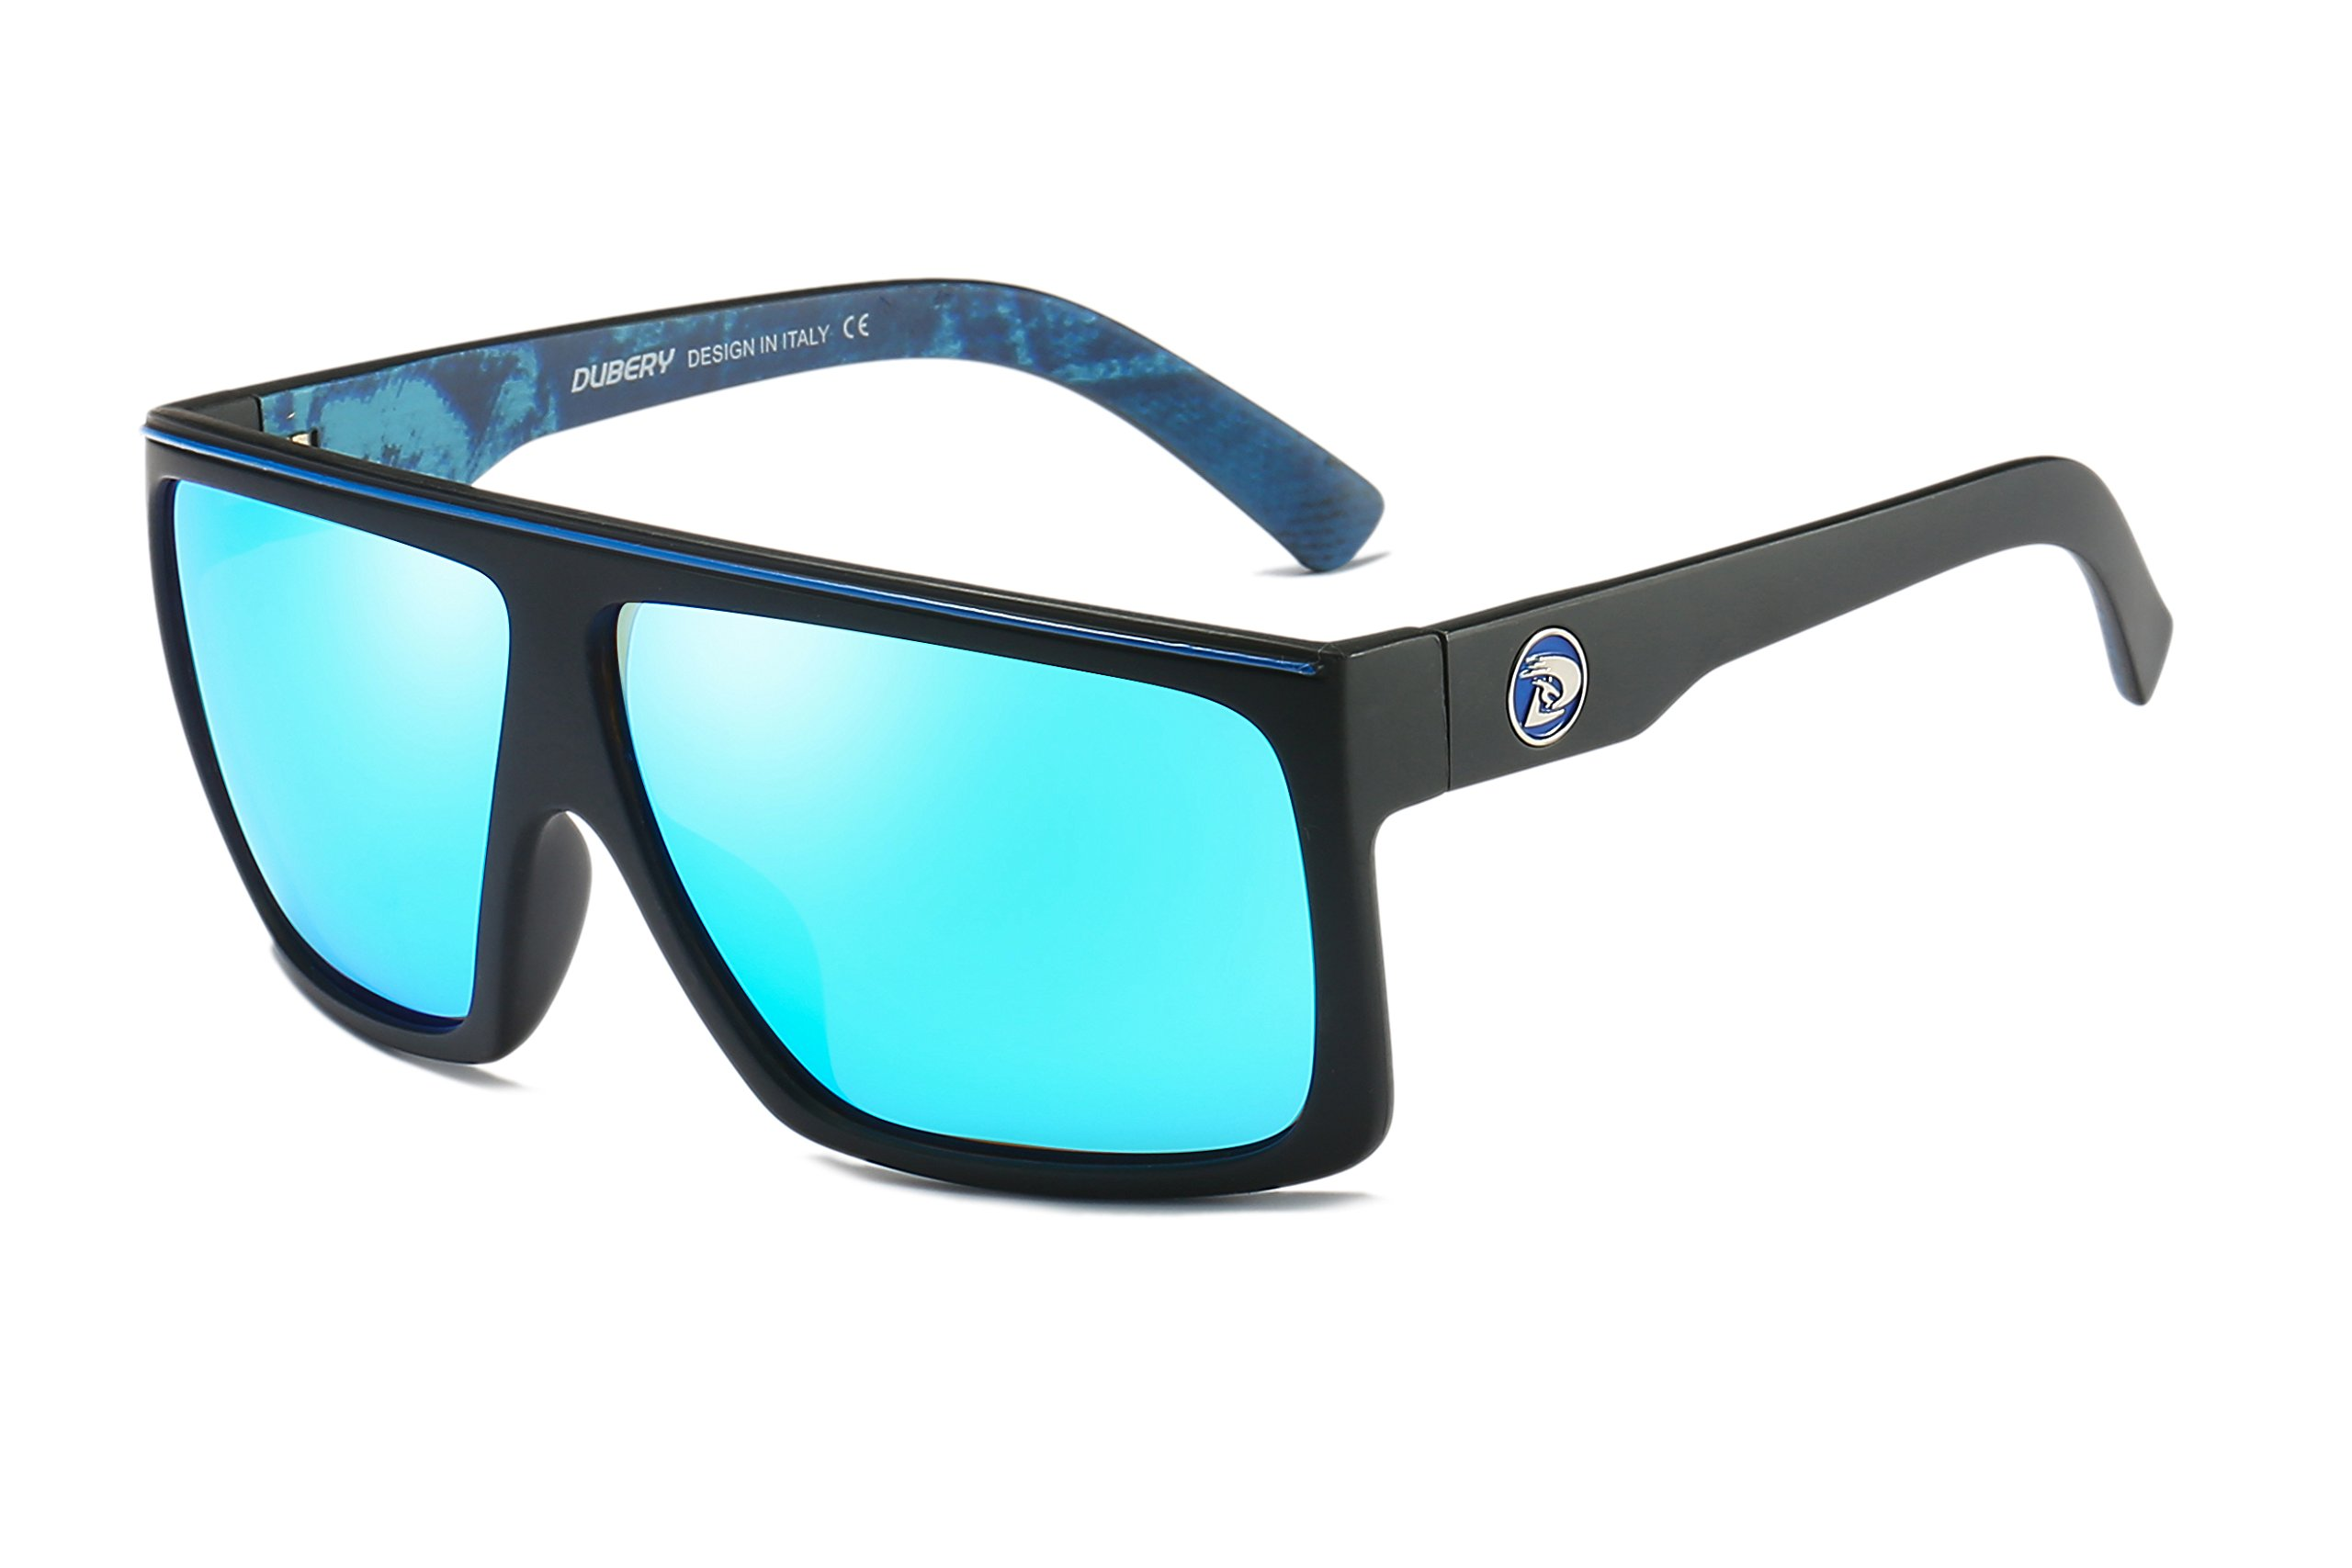 DUBERY New Men Polarized Sport Sunglasses Outdoor Women Driving Riding Goggles (#5) by DUBERY